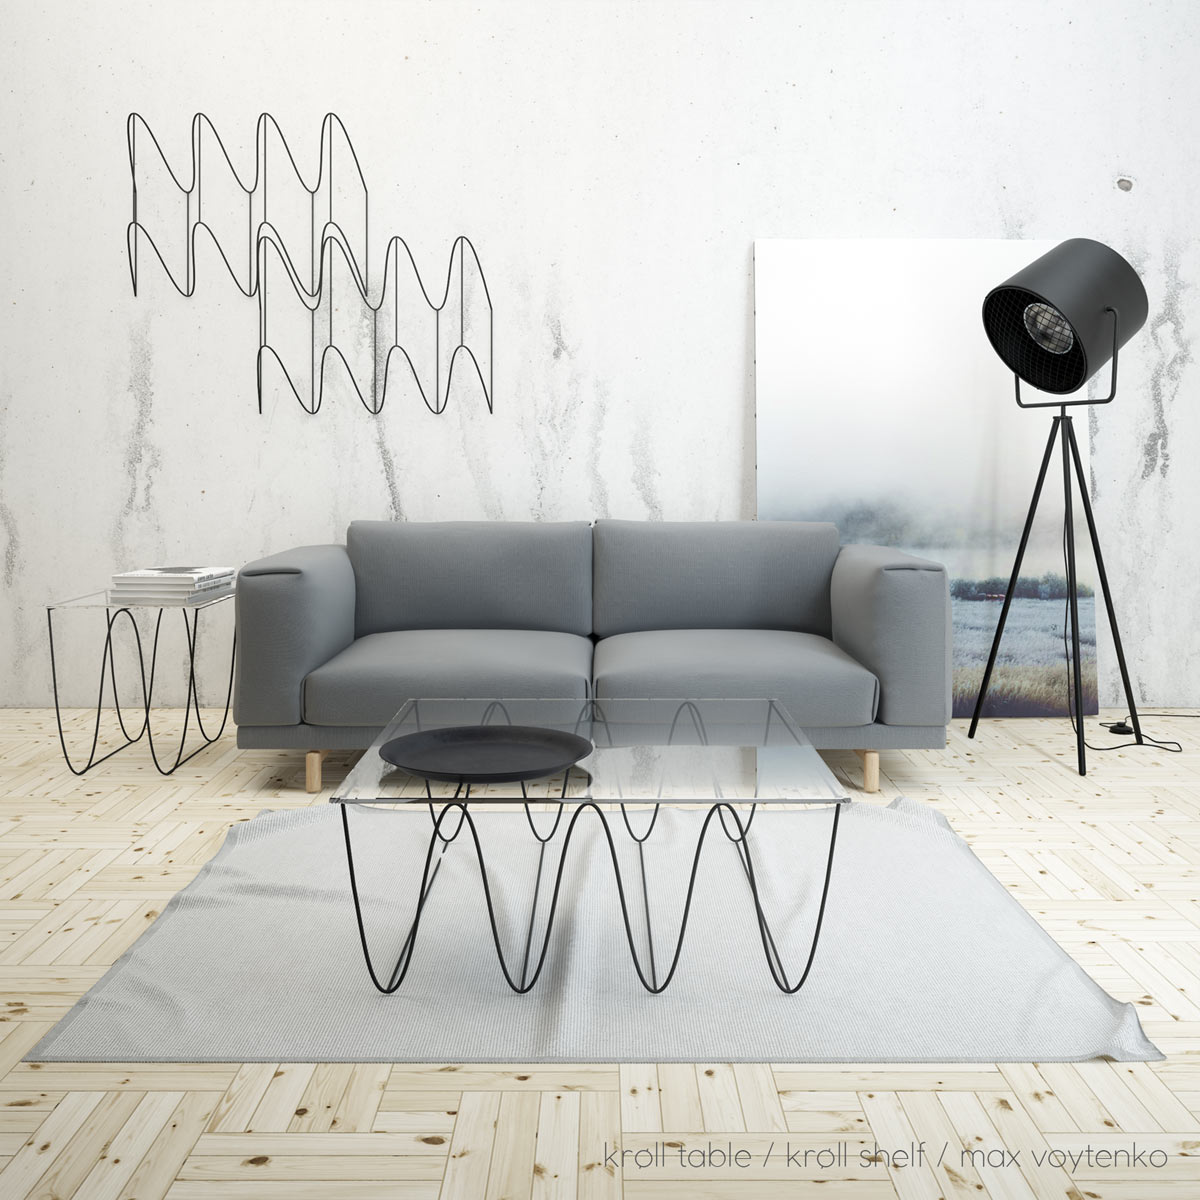 Undulating Shelves & Tables from Max Voytenko